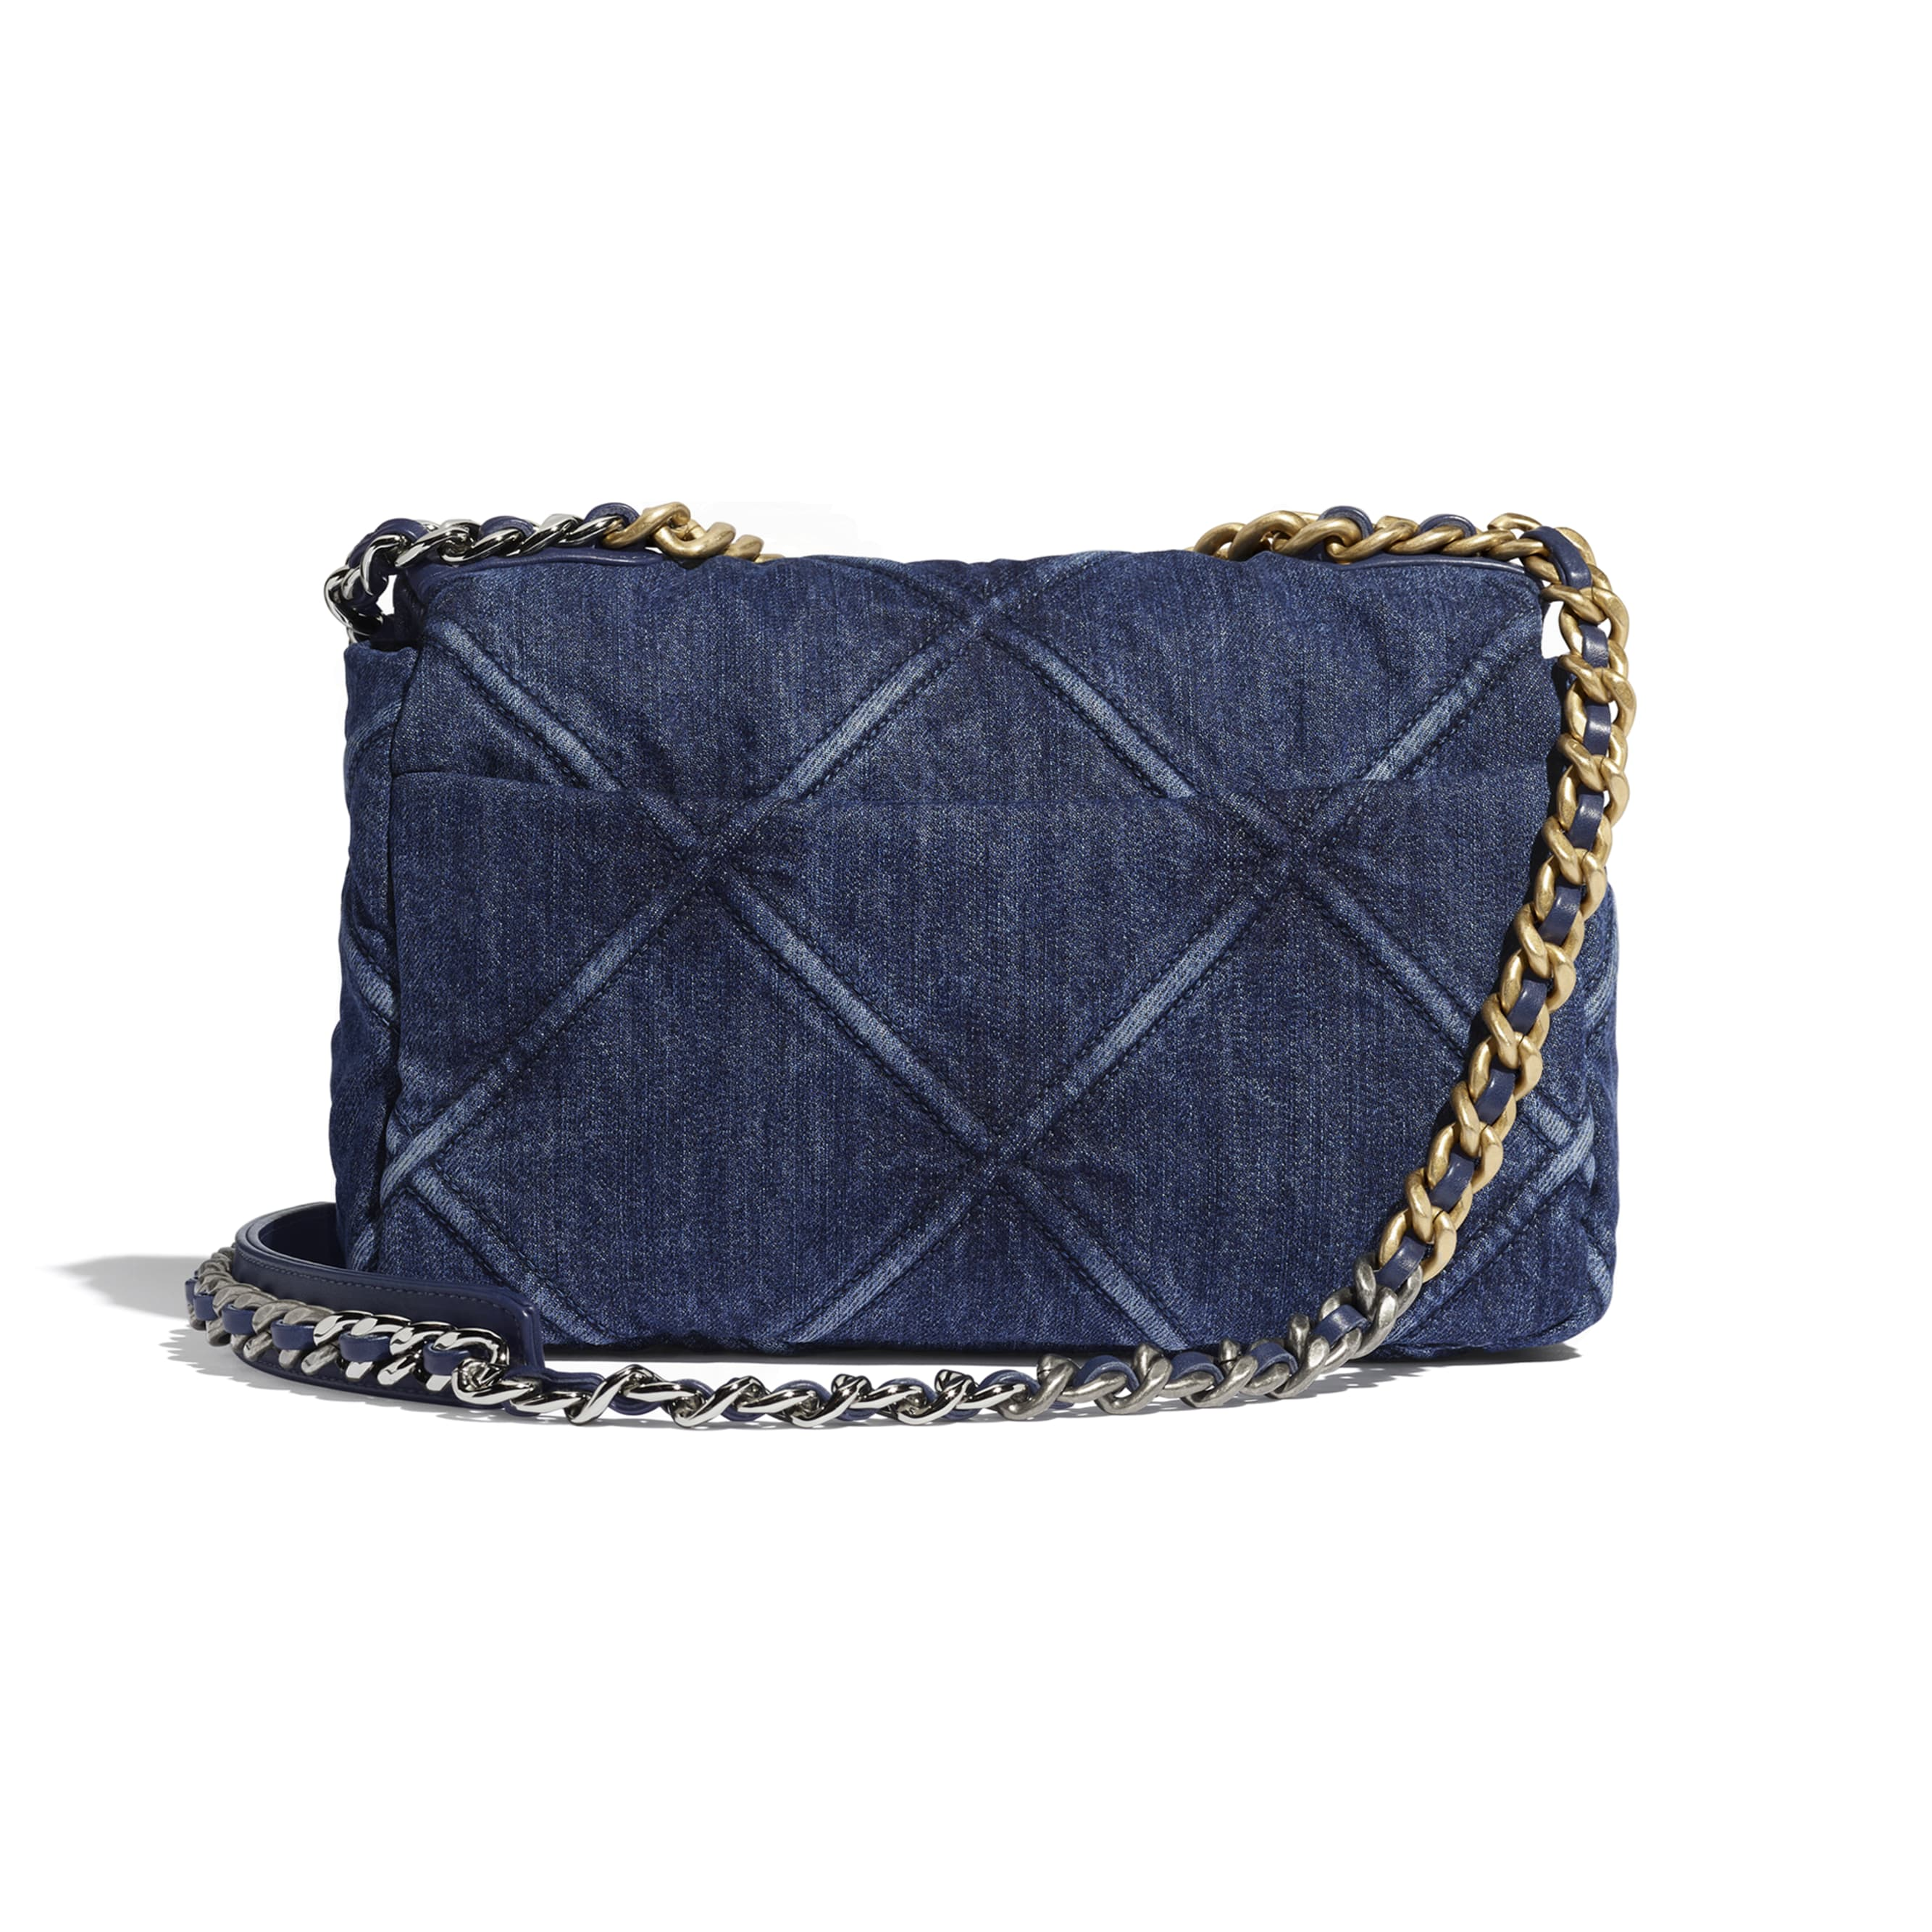 CHANEL 19 Flap Bag - Blue - Denim, Gold-Tone, Silver-Tone & Ruthenium-Finish Metal - CHANEL - Alternative view - see standard sized version